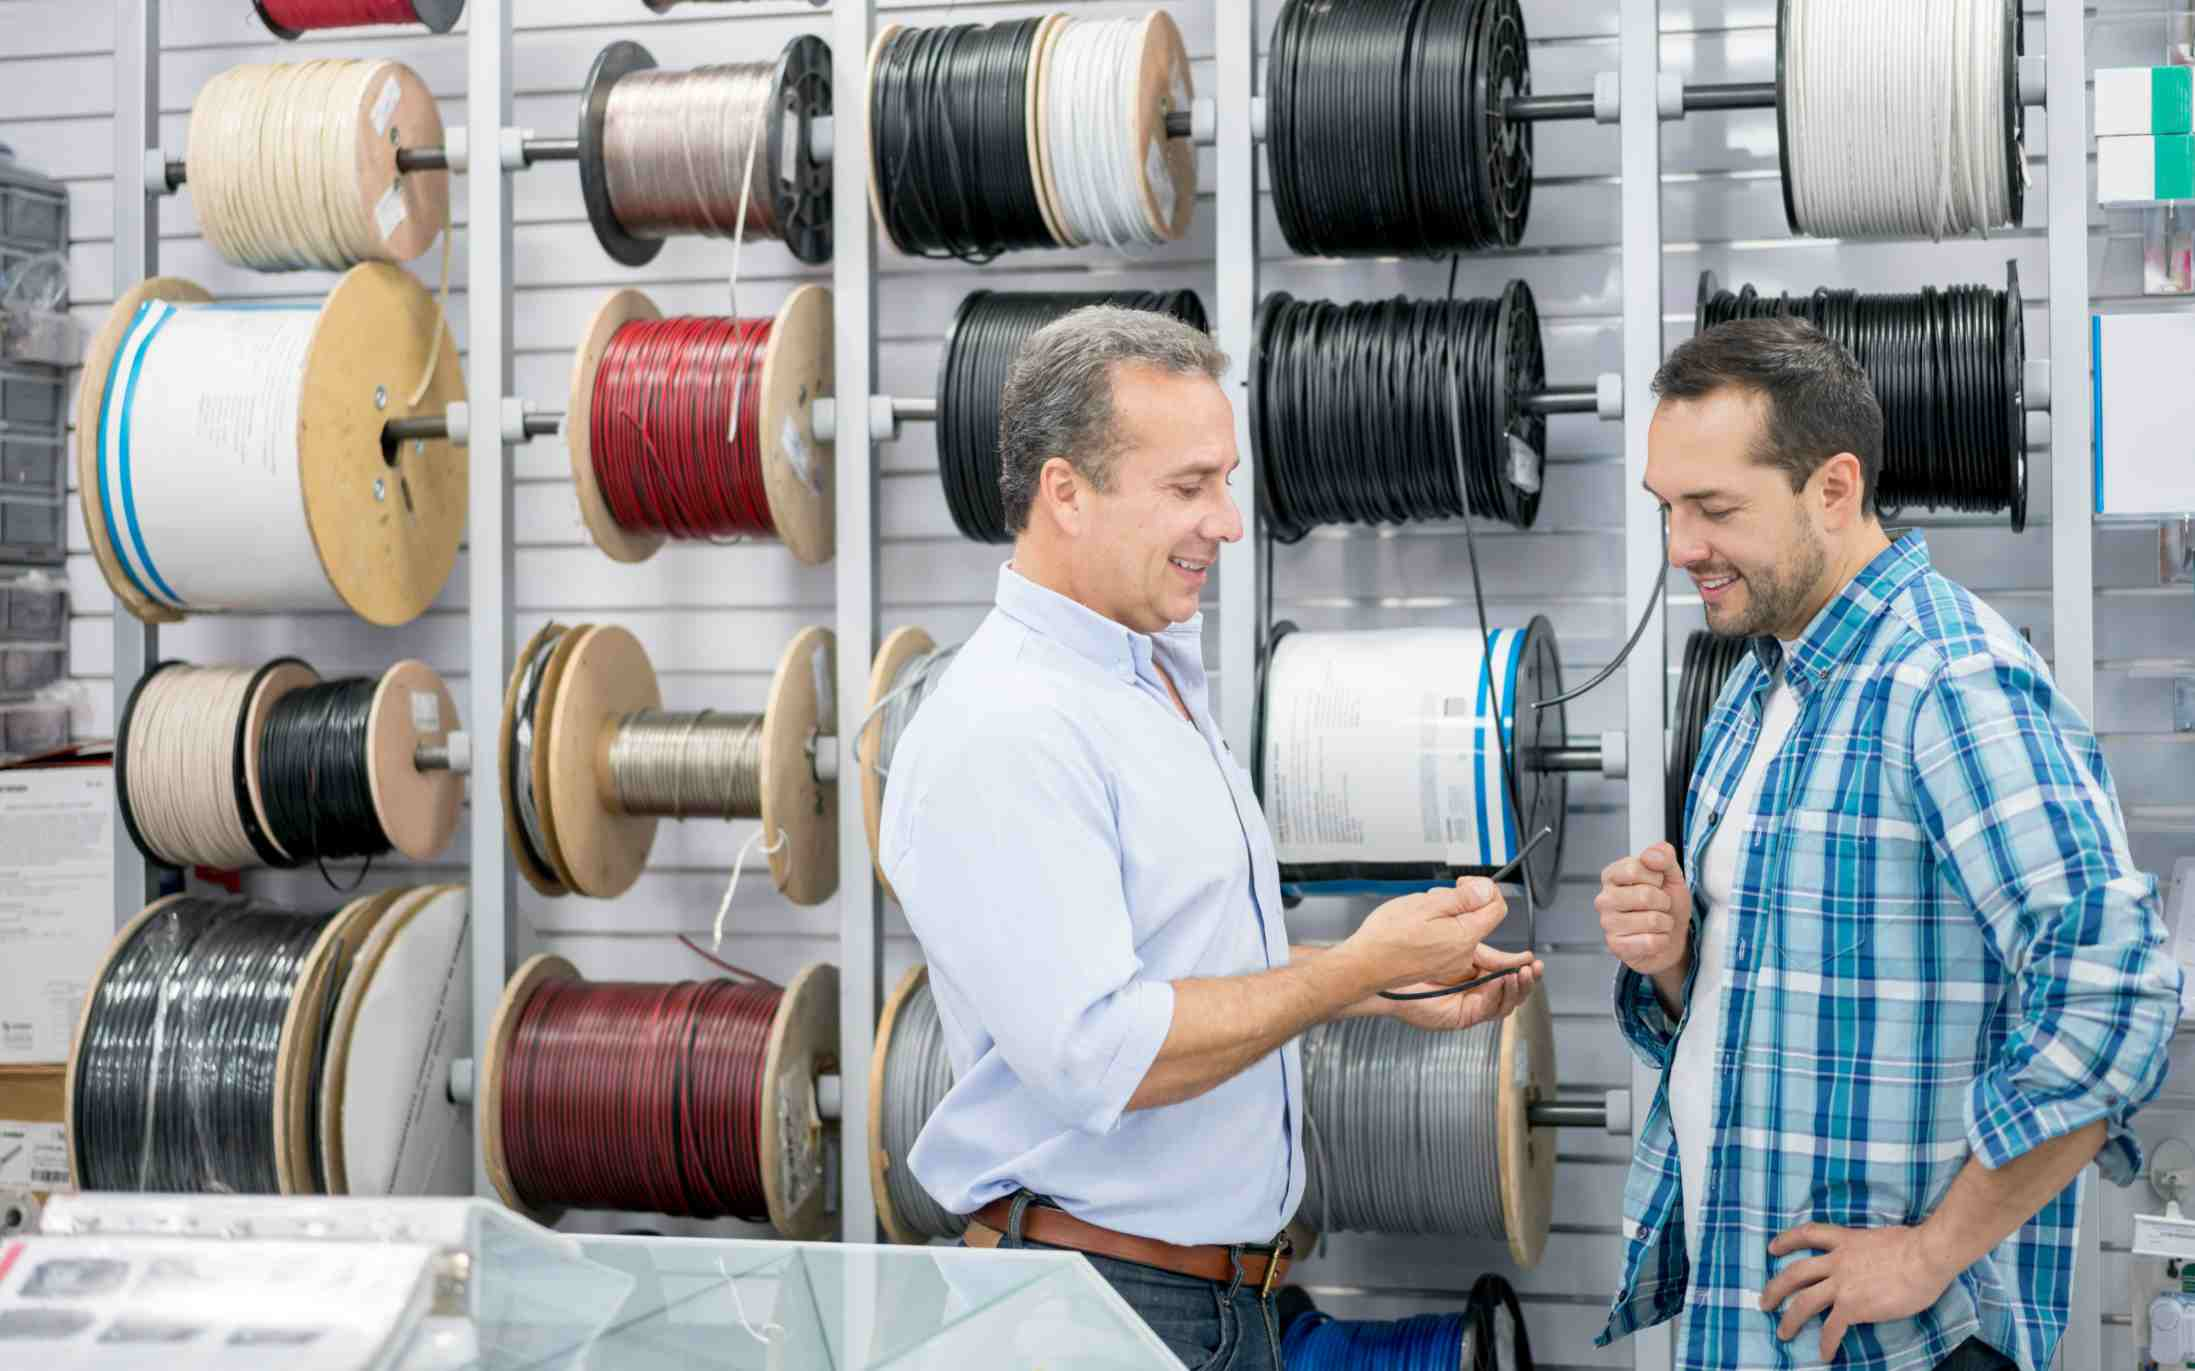 Salesperson talking to shopper in front of wall holding several spools of wire in a hardware store.